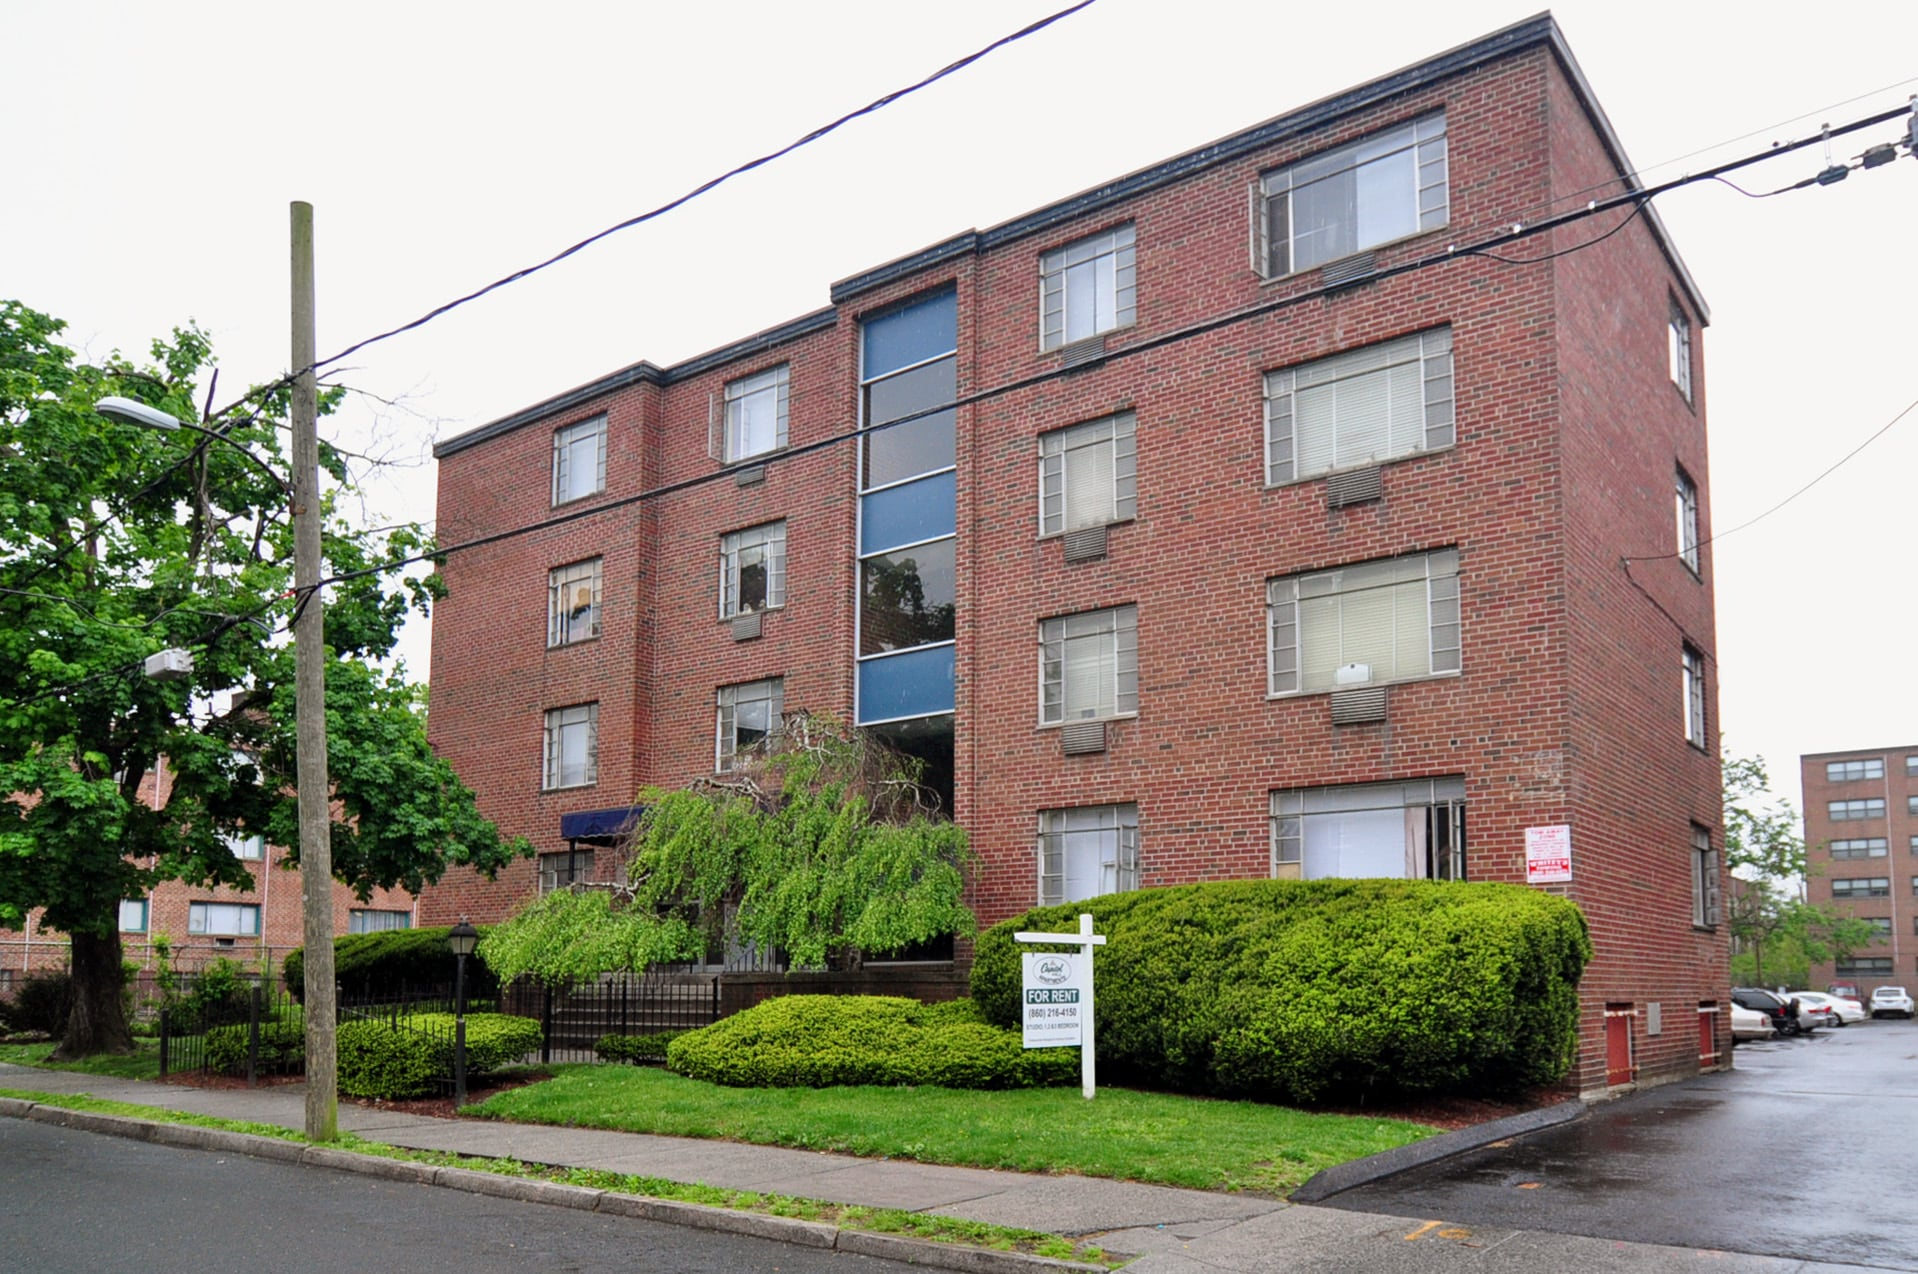 property management in hartford bloomfield manchester new britain ct